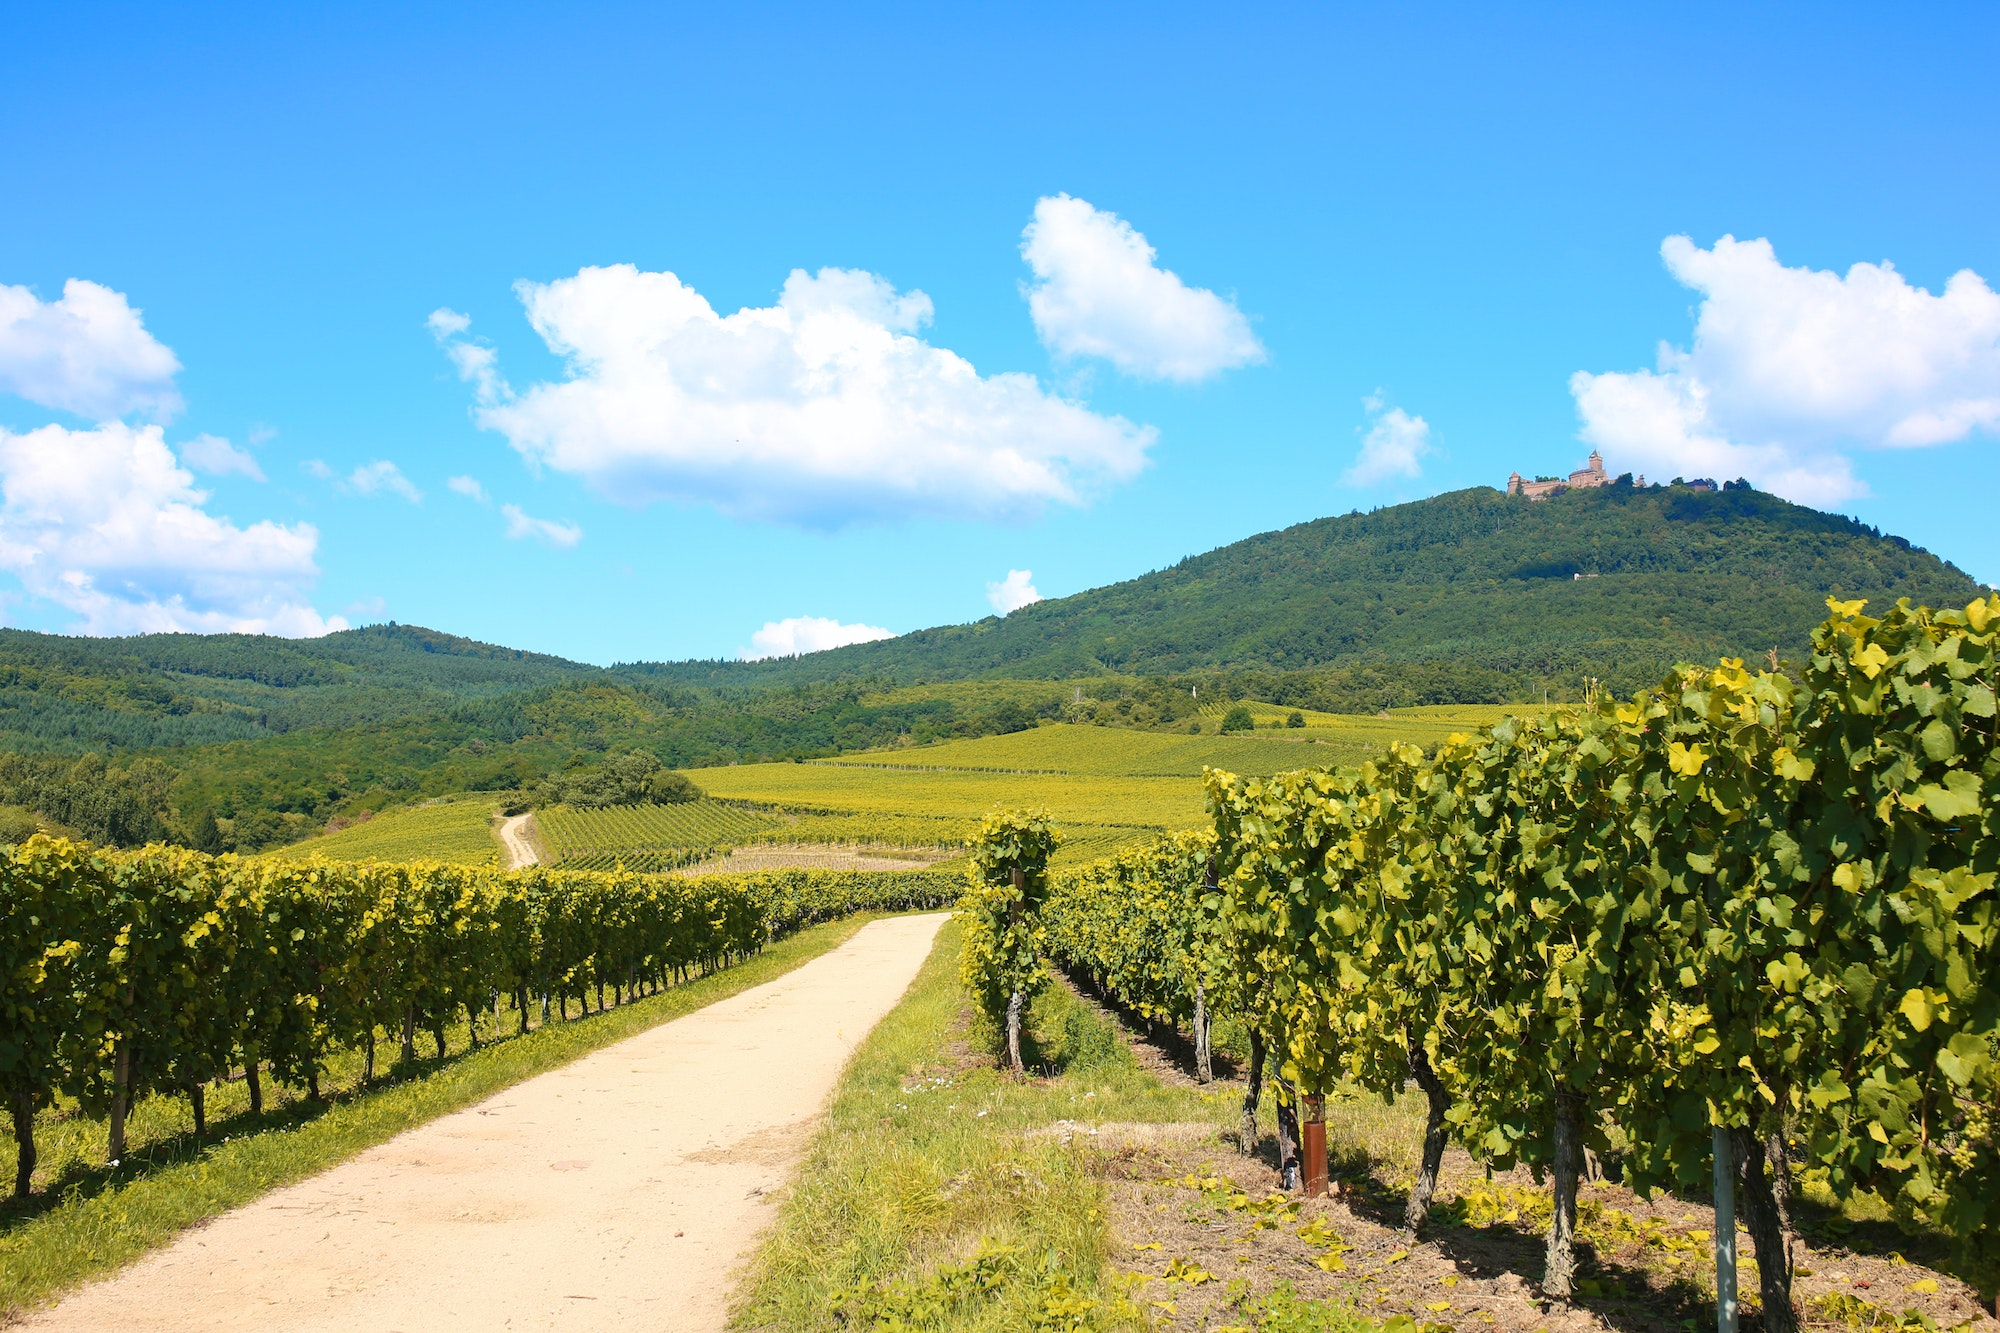 The Alsace Wine Road stretches from Strasbourg to Colmar in eastern France.